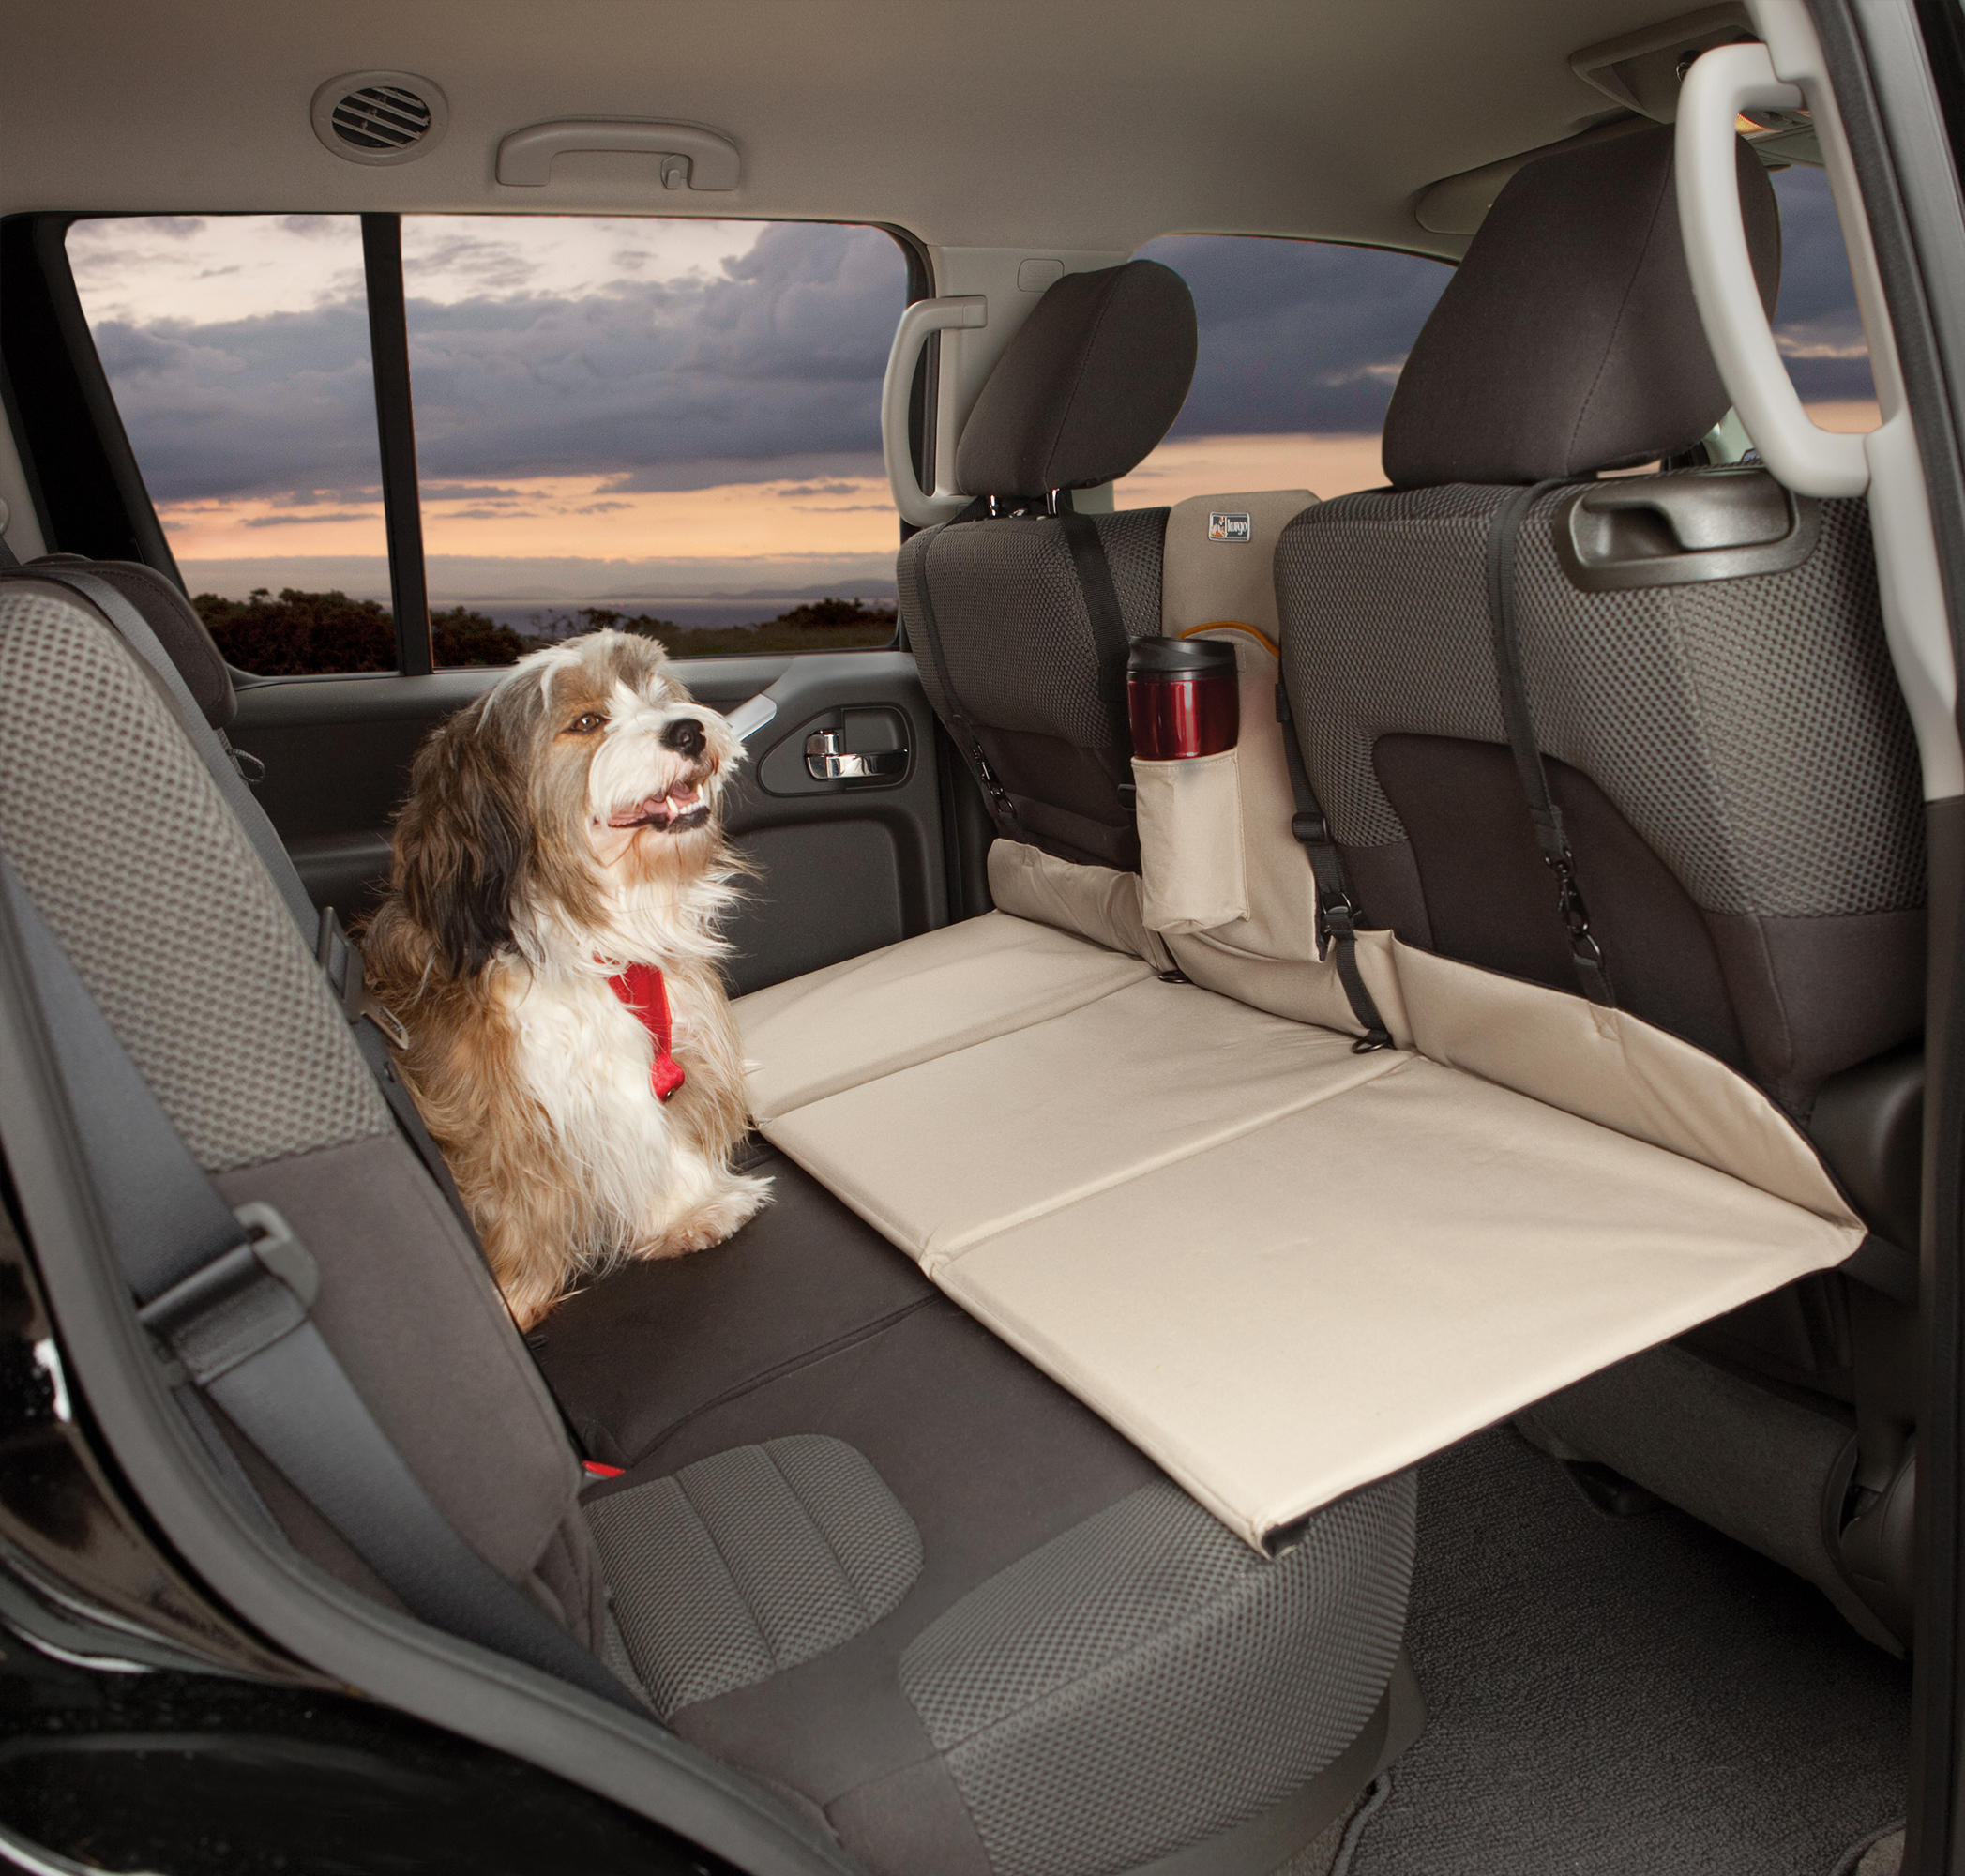 Kurgo Backseat Bridge Rear Car Seat Extension For Dog Travel